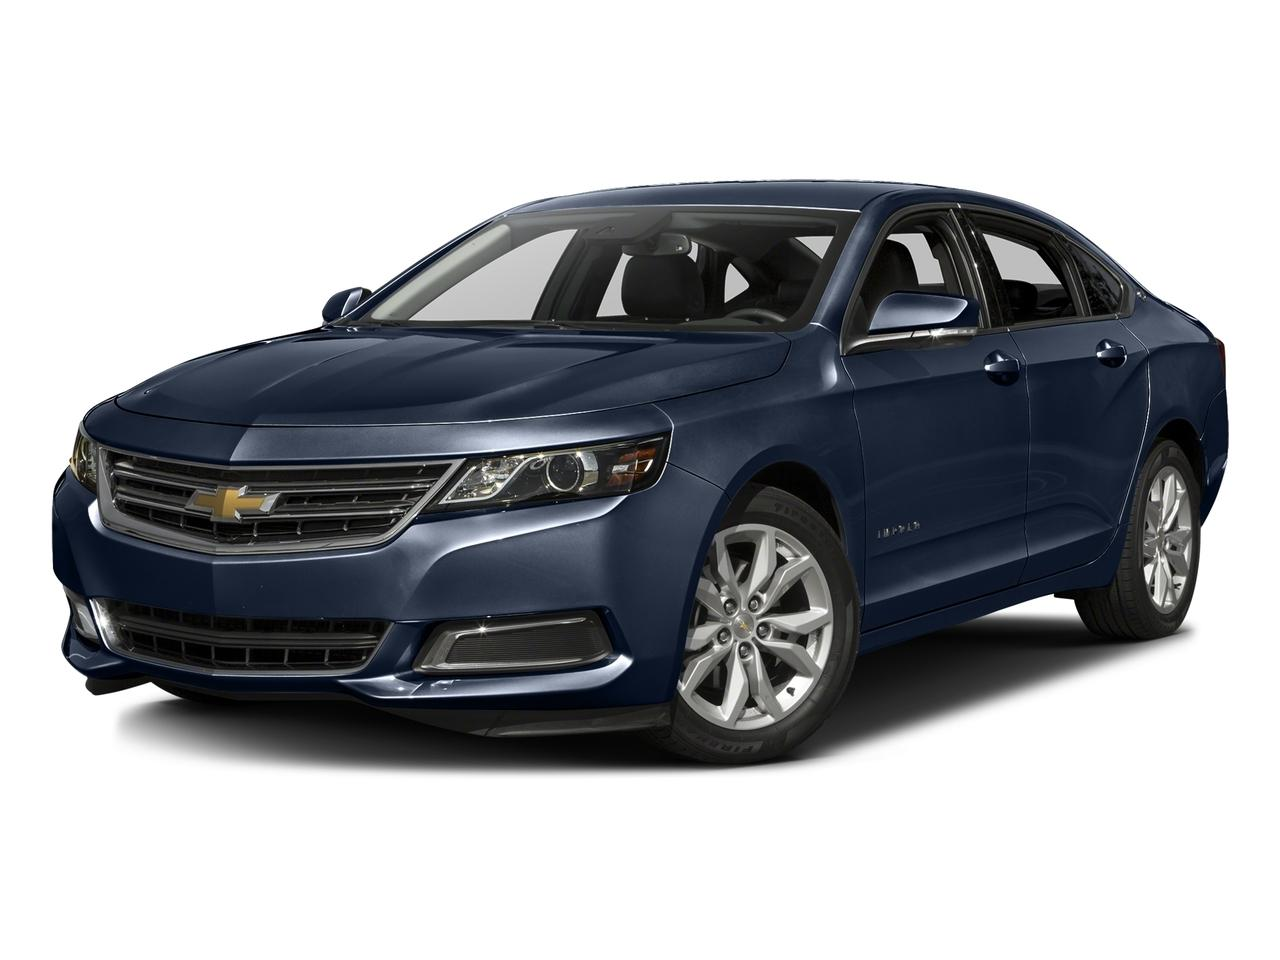 2017 Chevrolet Impala Vehicle Photo in Massena, NY 13662